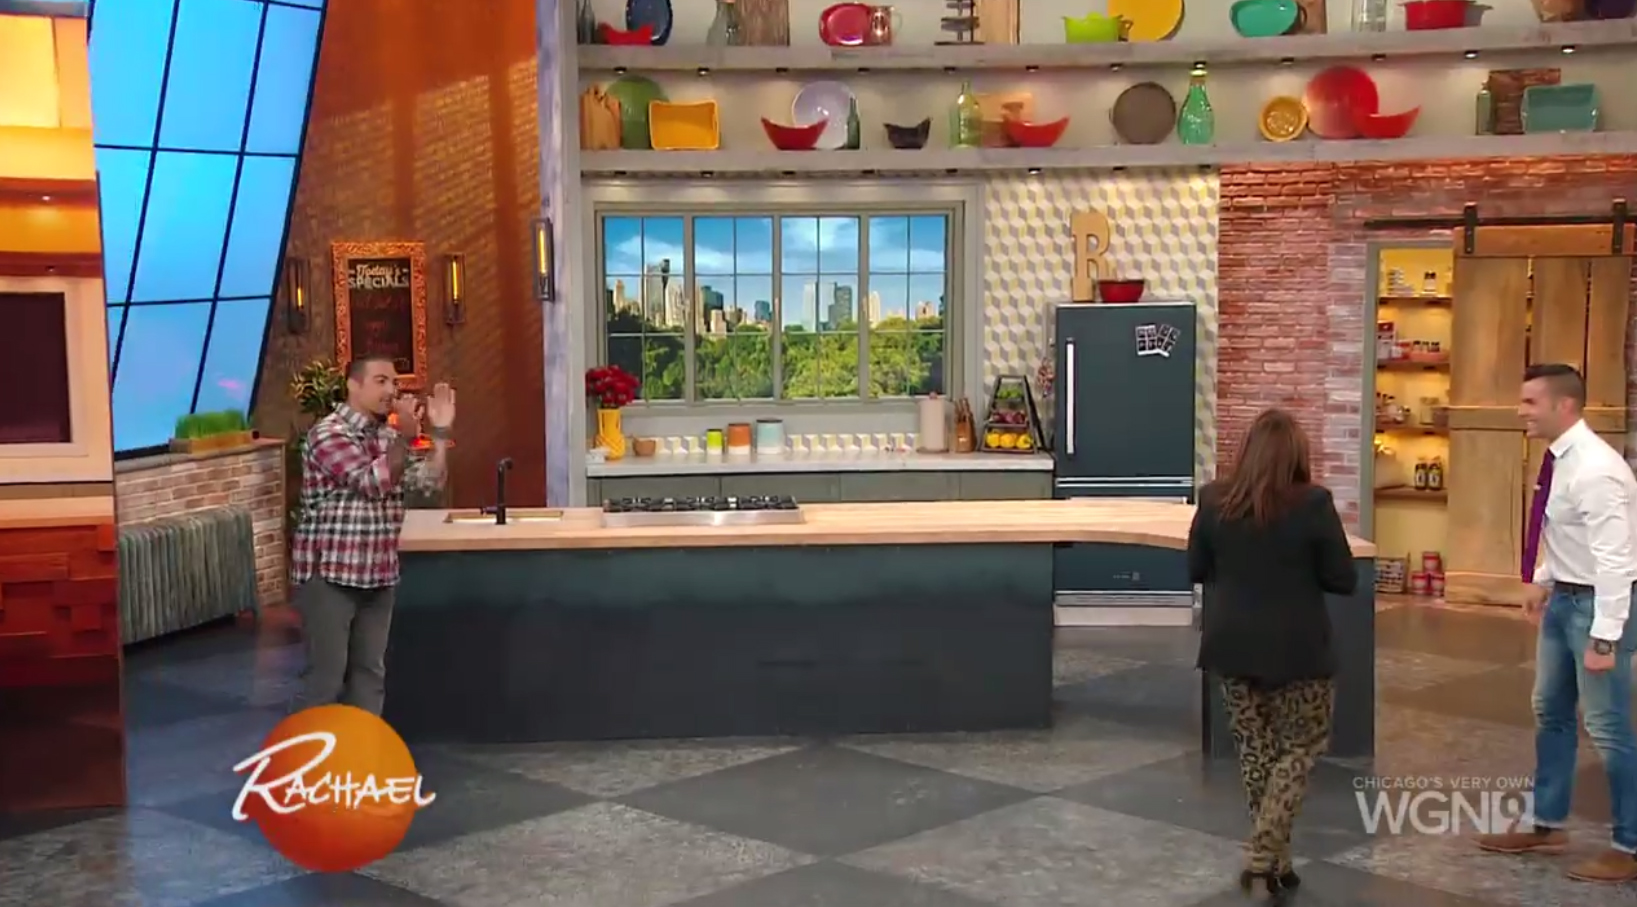 rachael ray kitchen rags gets cooking in new newscaststudio colaneri and carrino unveiled the set true hgtv fashion with two printed graphics of her old being dramatically pulled aside to reveal